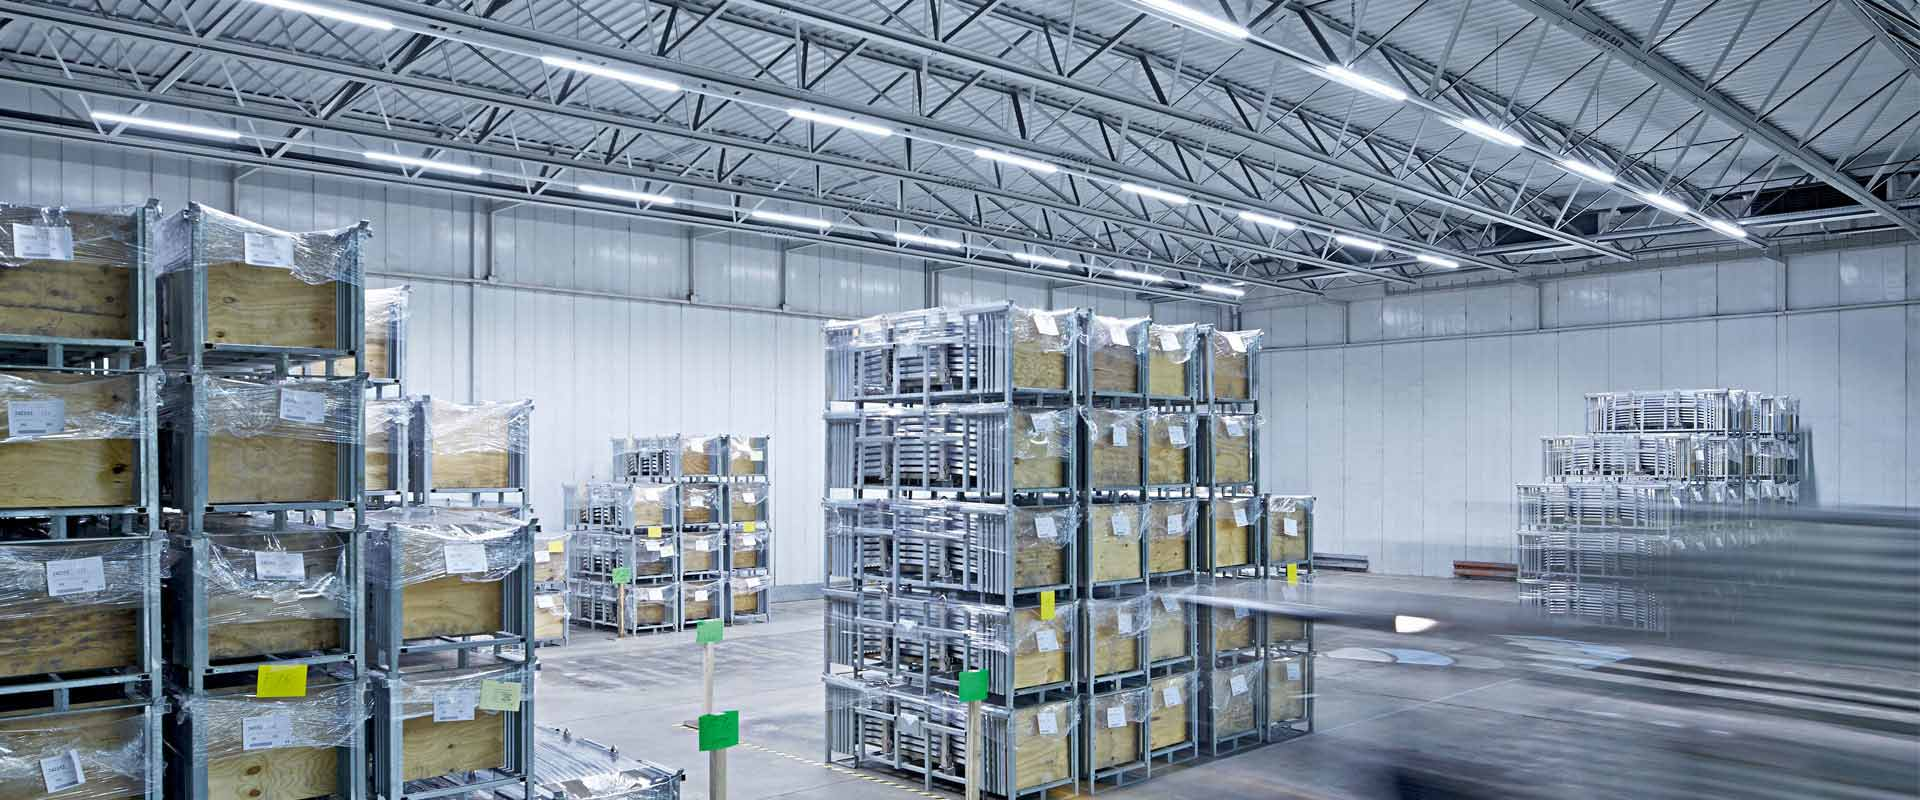 Led Warehouse Lighting By Trilux